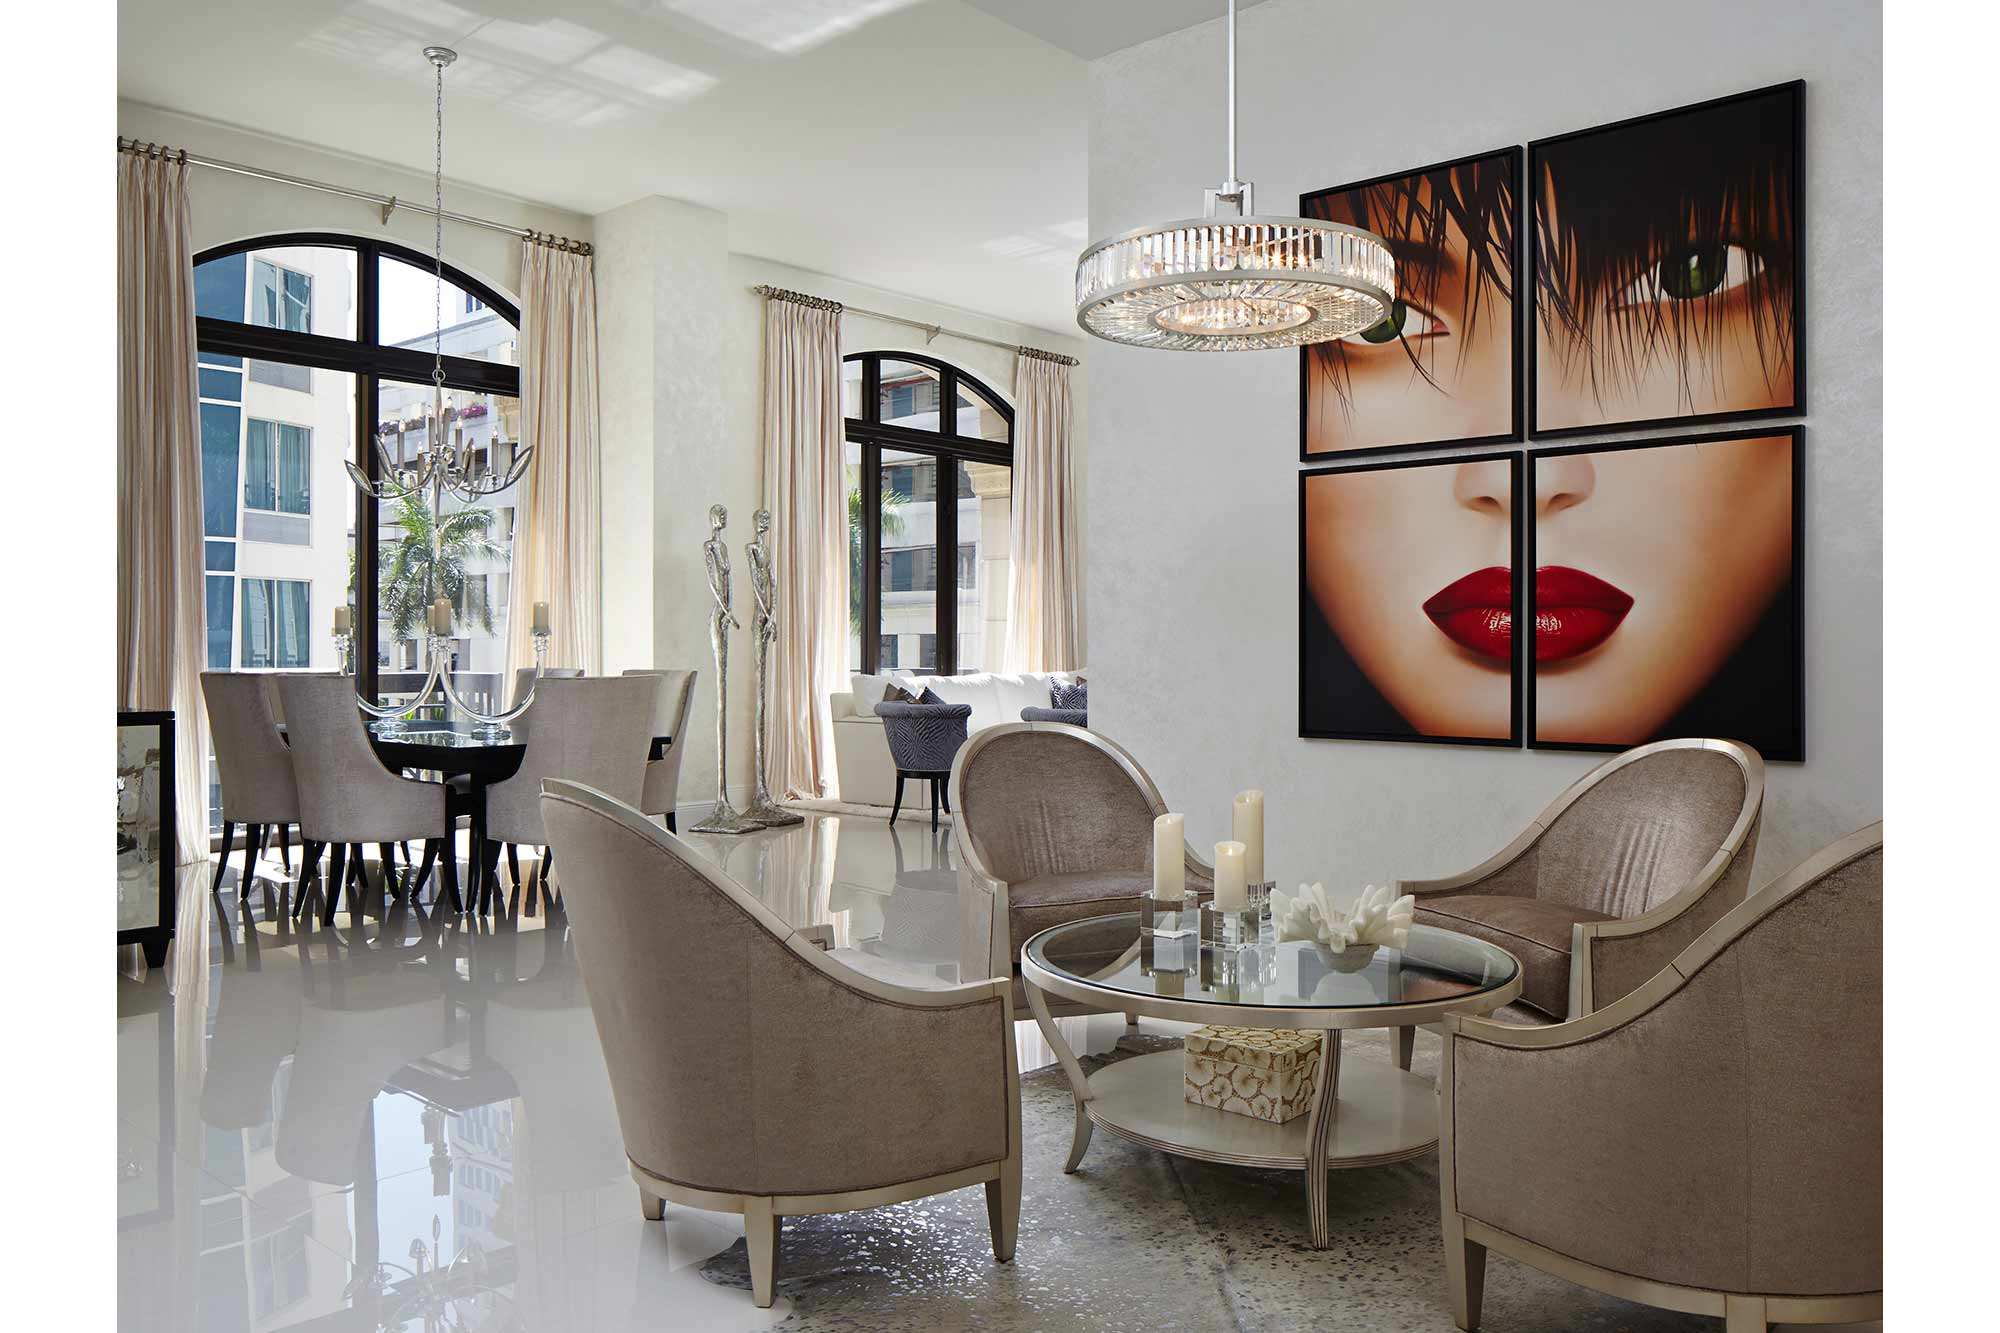 Palm beach urban glamor annie santulli designs luxury palm beach interior design Palm beach interior designers